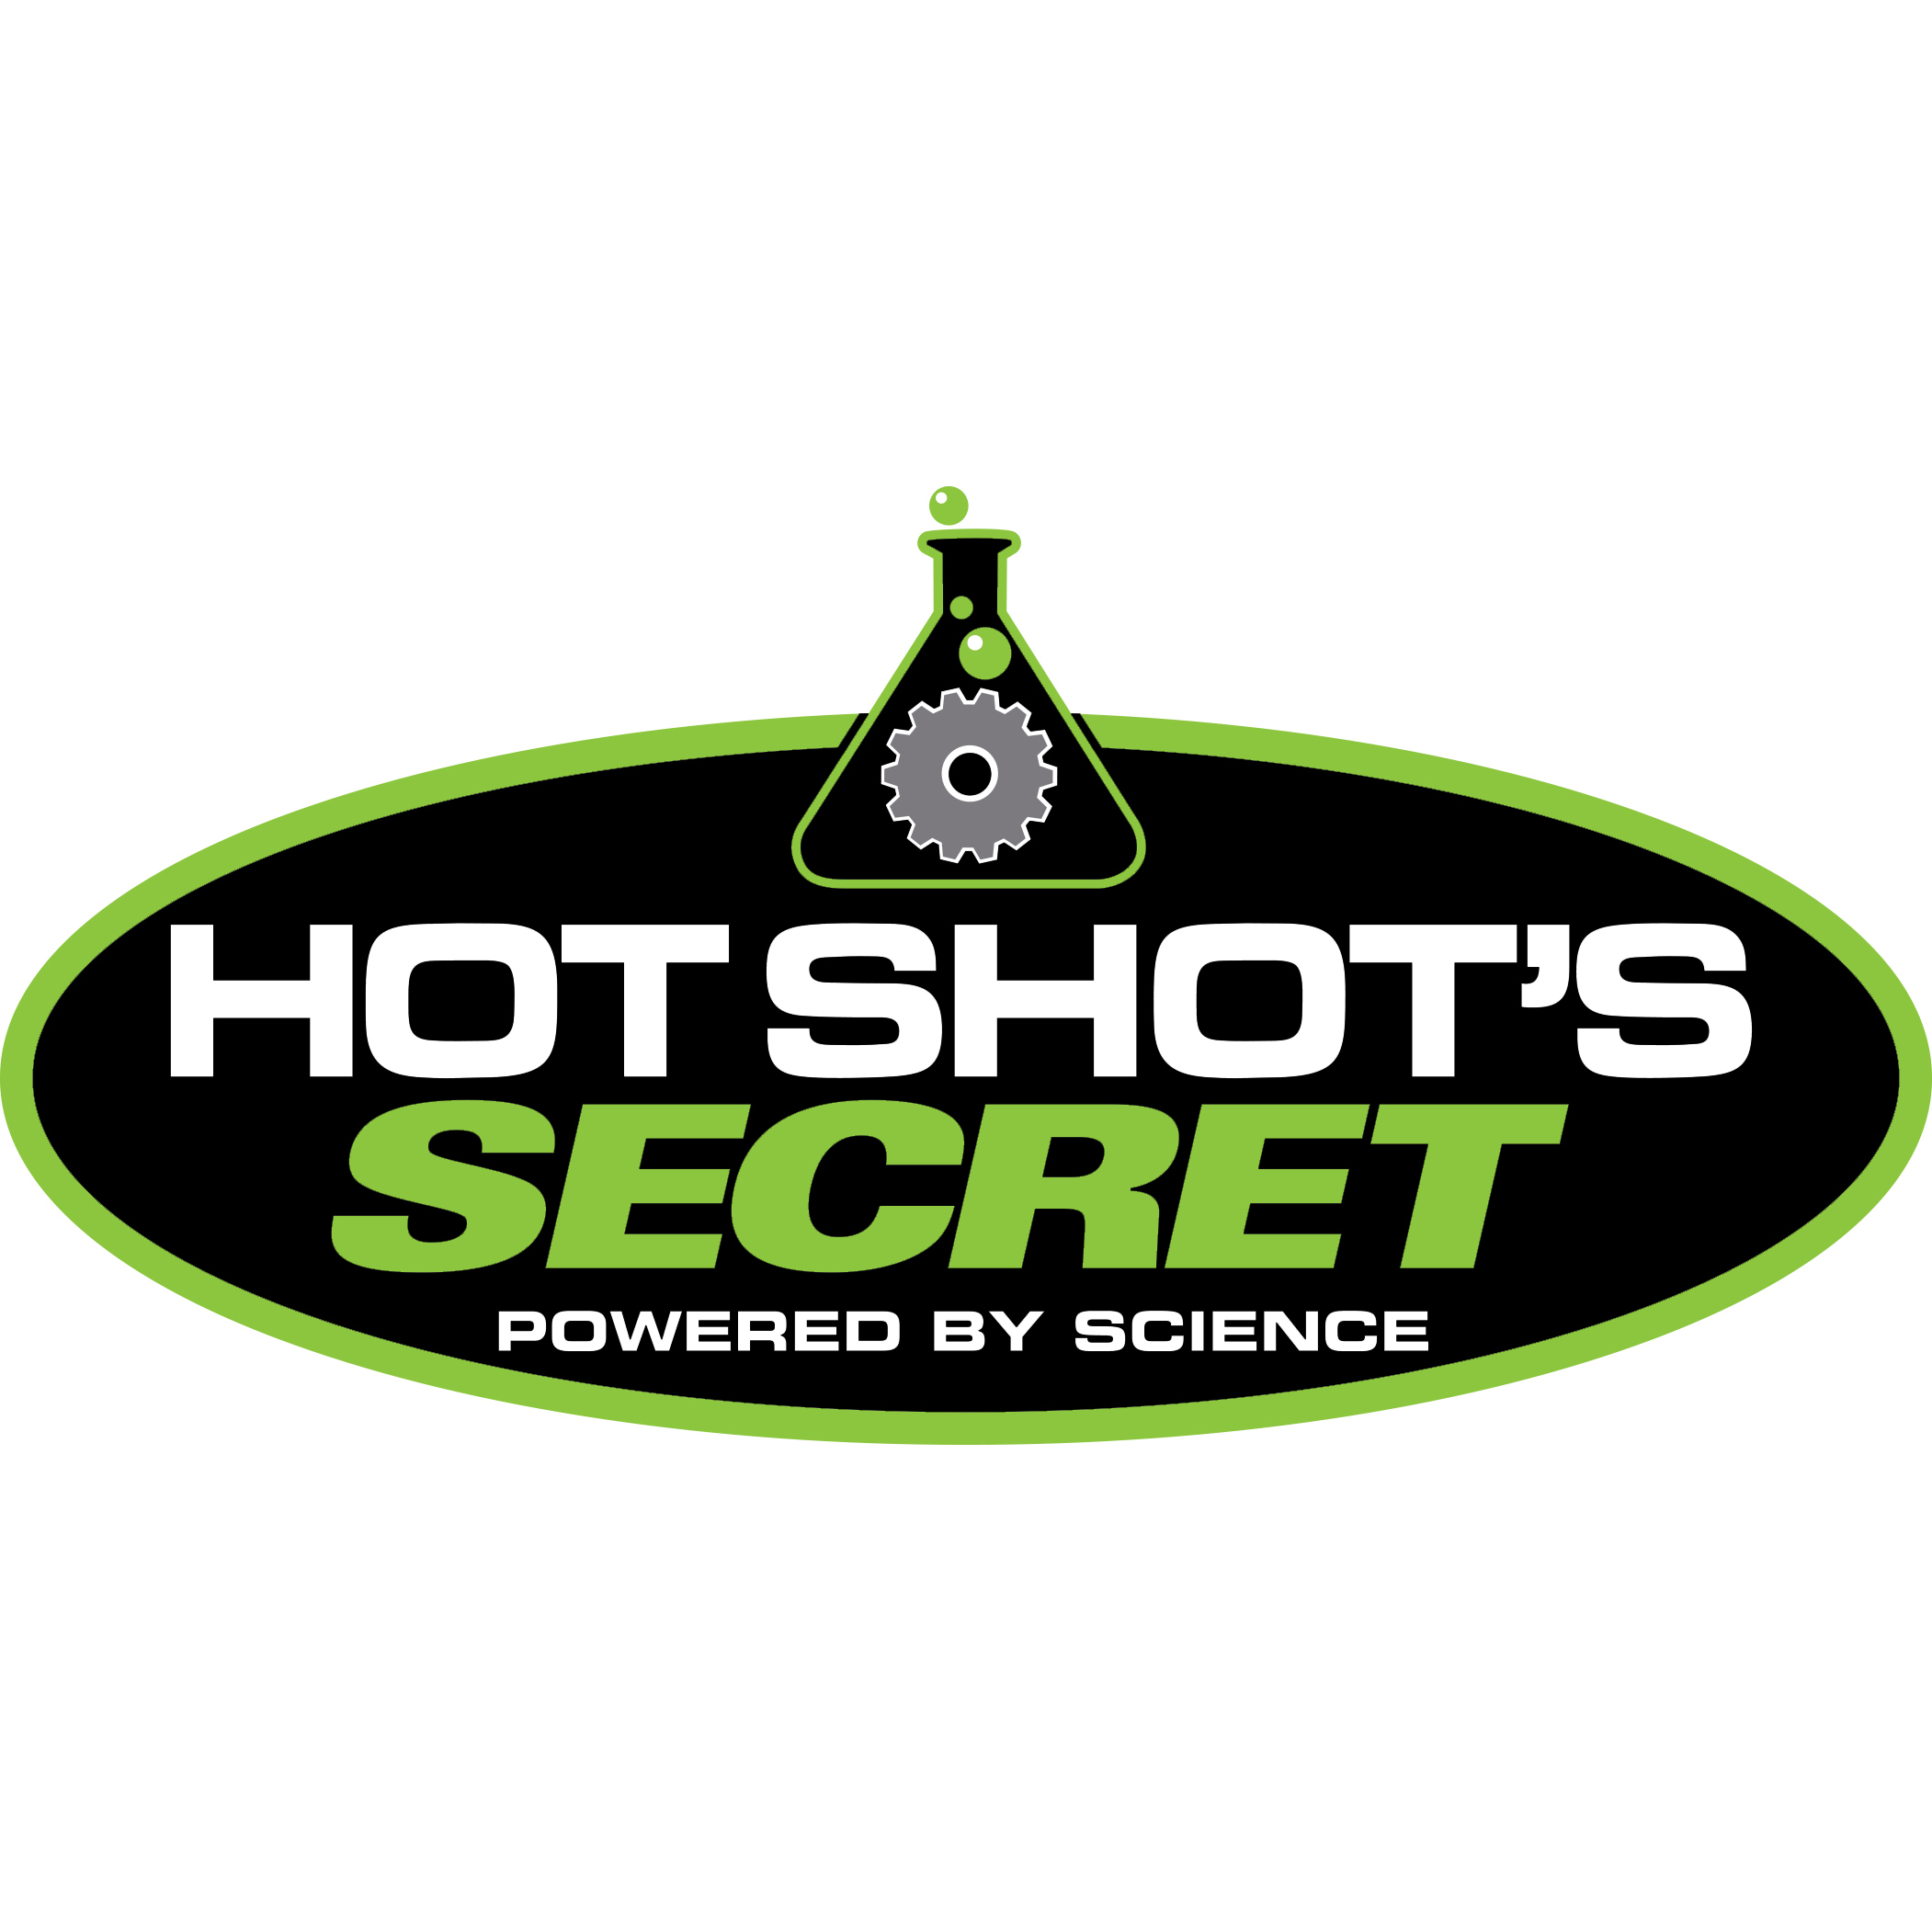 Diesel Extreme Fuel Additive Injector Cleaner Hot Shots Secret Semi Truck Filter Kits